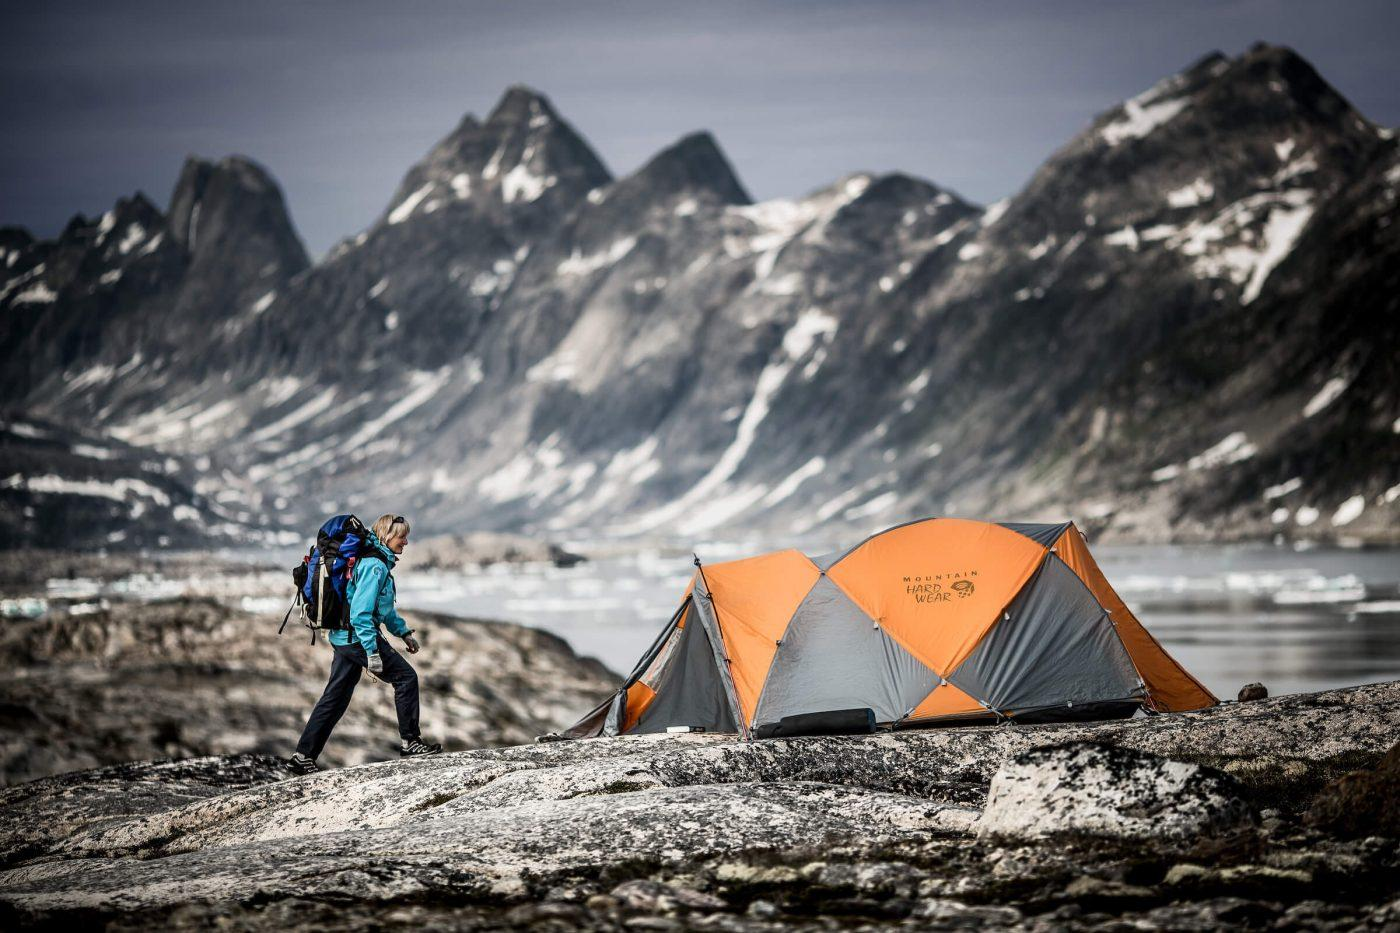 A hiker approaching a tent at a camp in East Greenland near Tasiilaq. By Mads Pihl